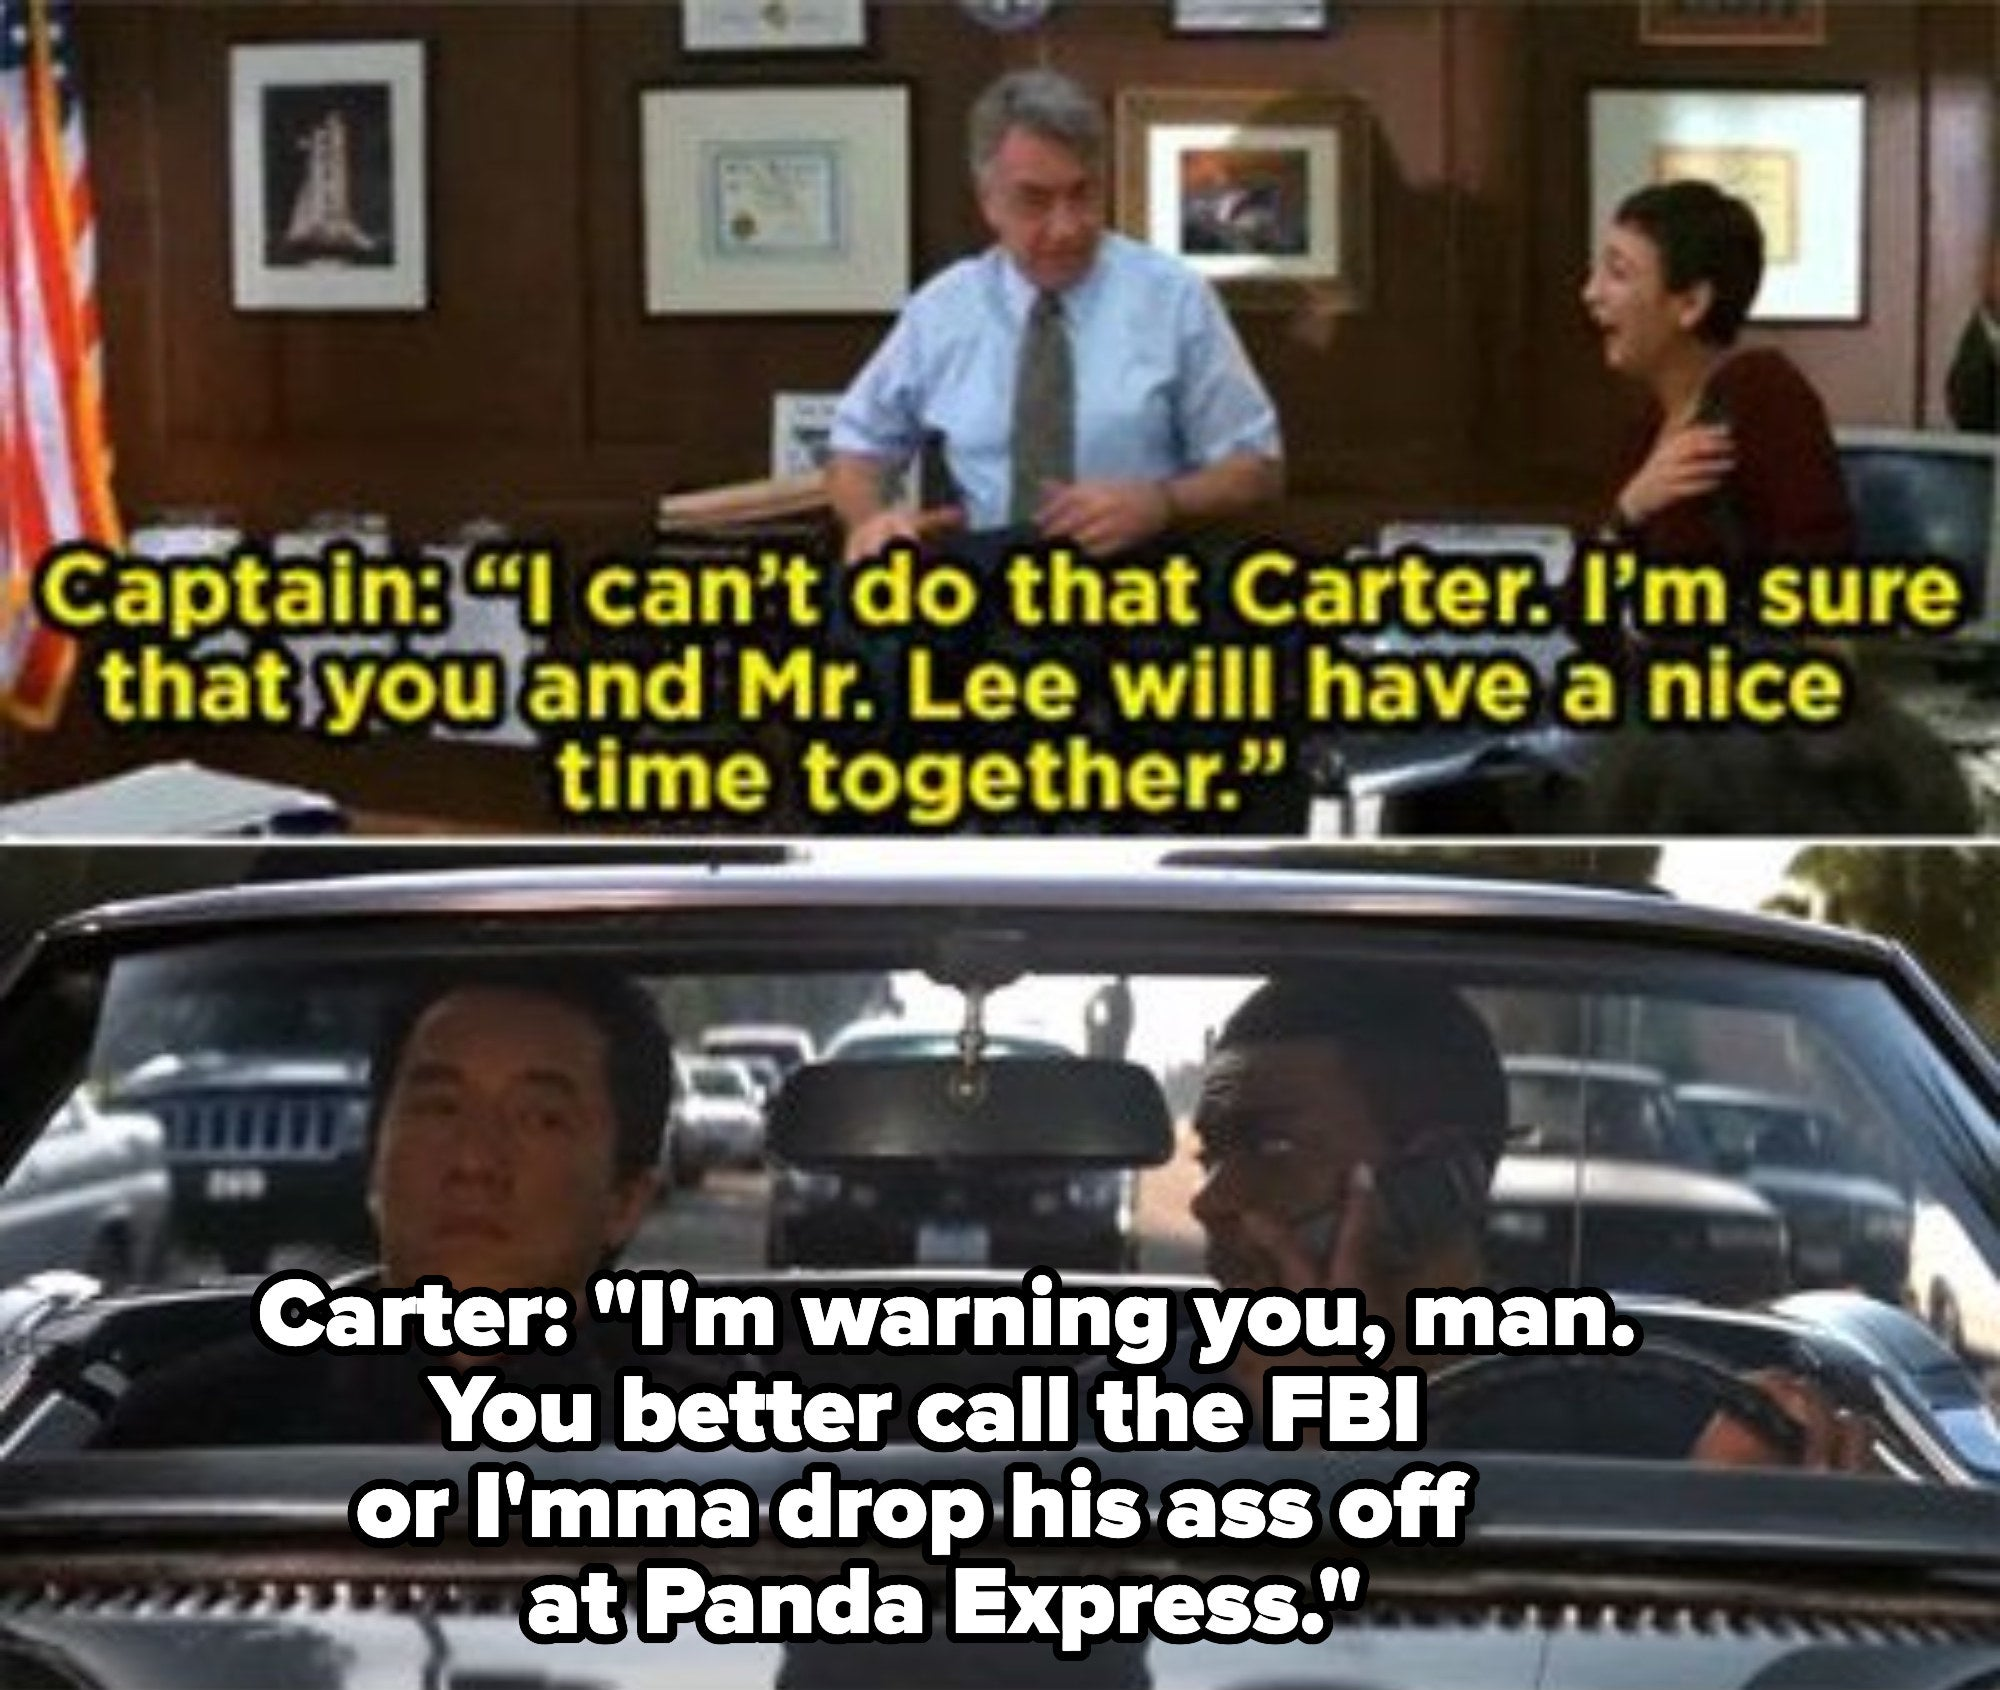 Carter telling his boss that he is going to drop Lee off at Panda Express